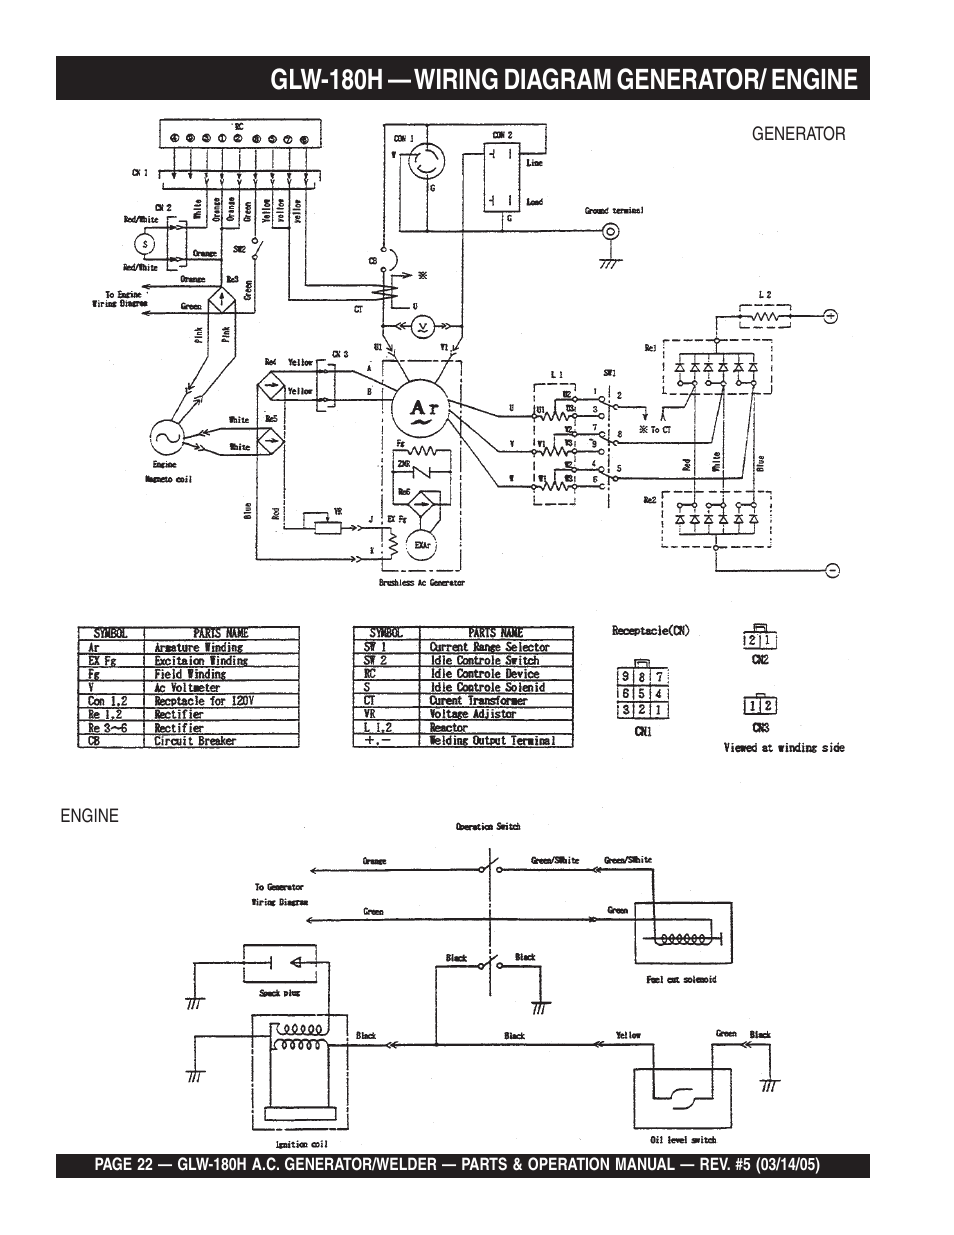 Glw-180h — wiring diagram generator/ engine | Multiquip A.C. ... on